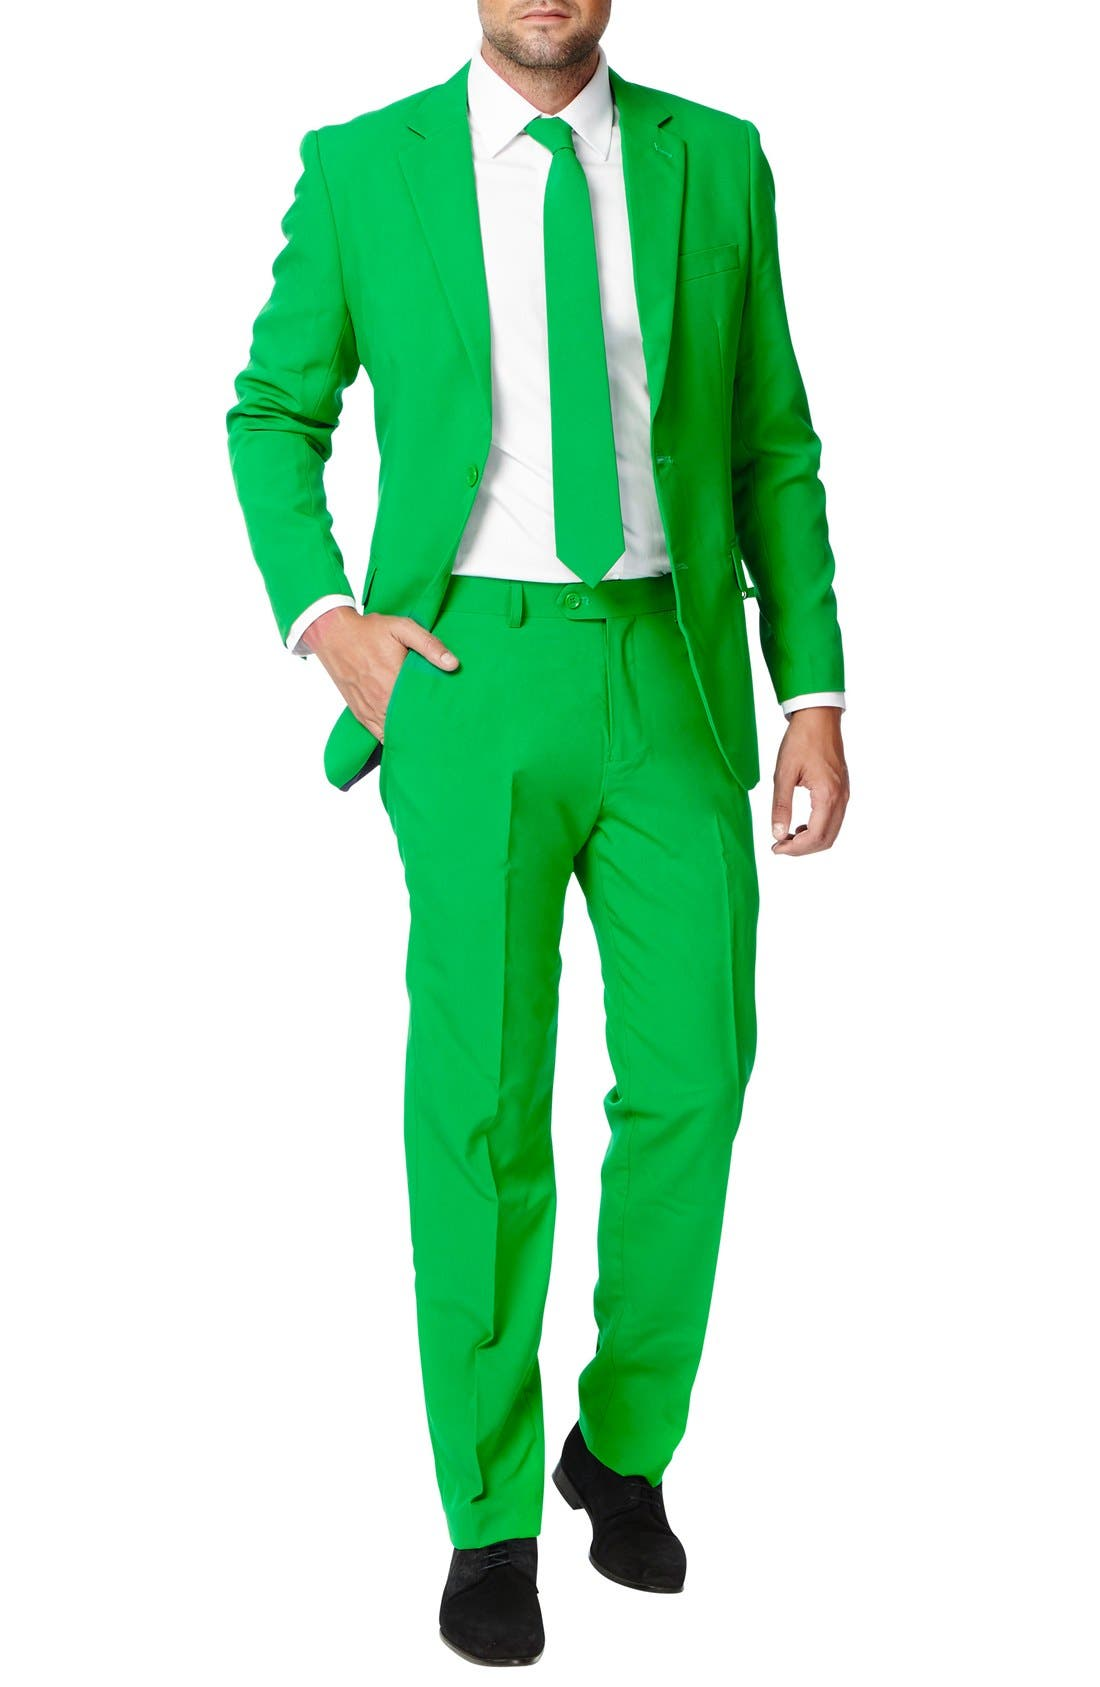 'Evergreen' Trim Fit Suit with Tie,                         Main,                         color, Green